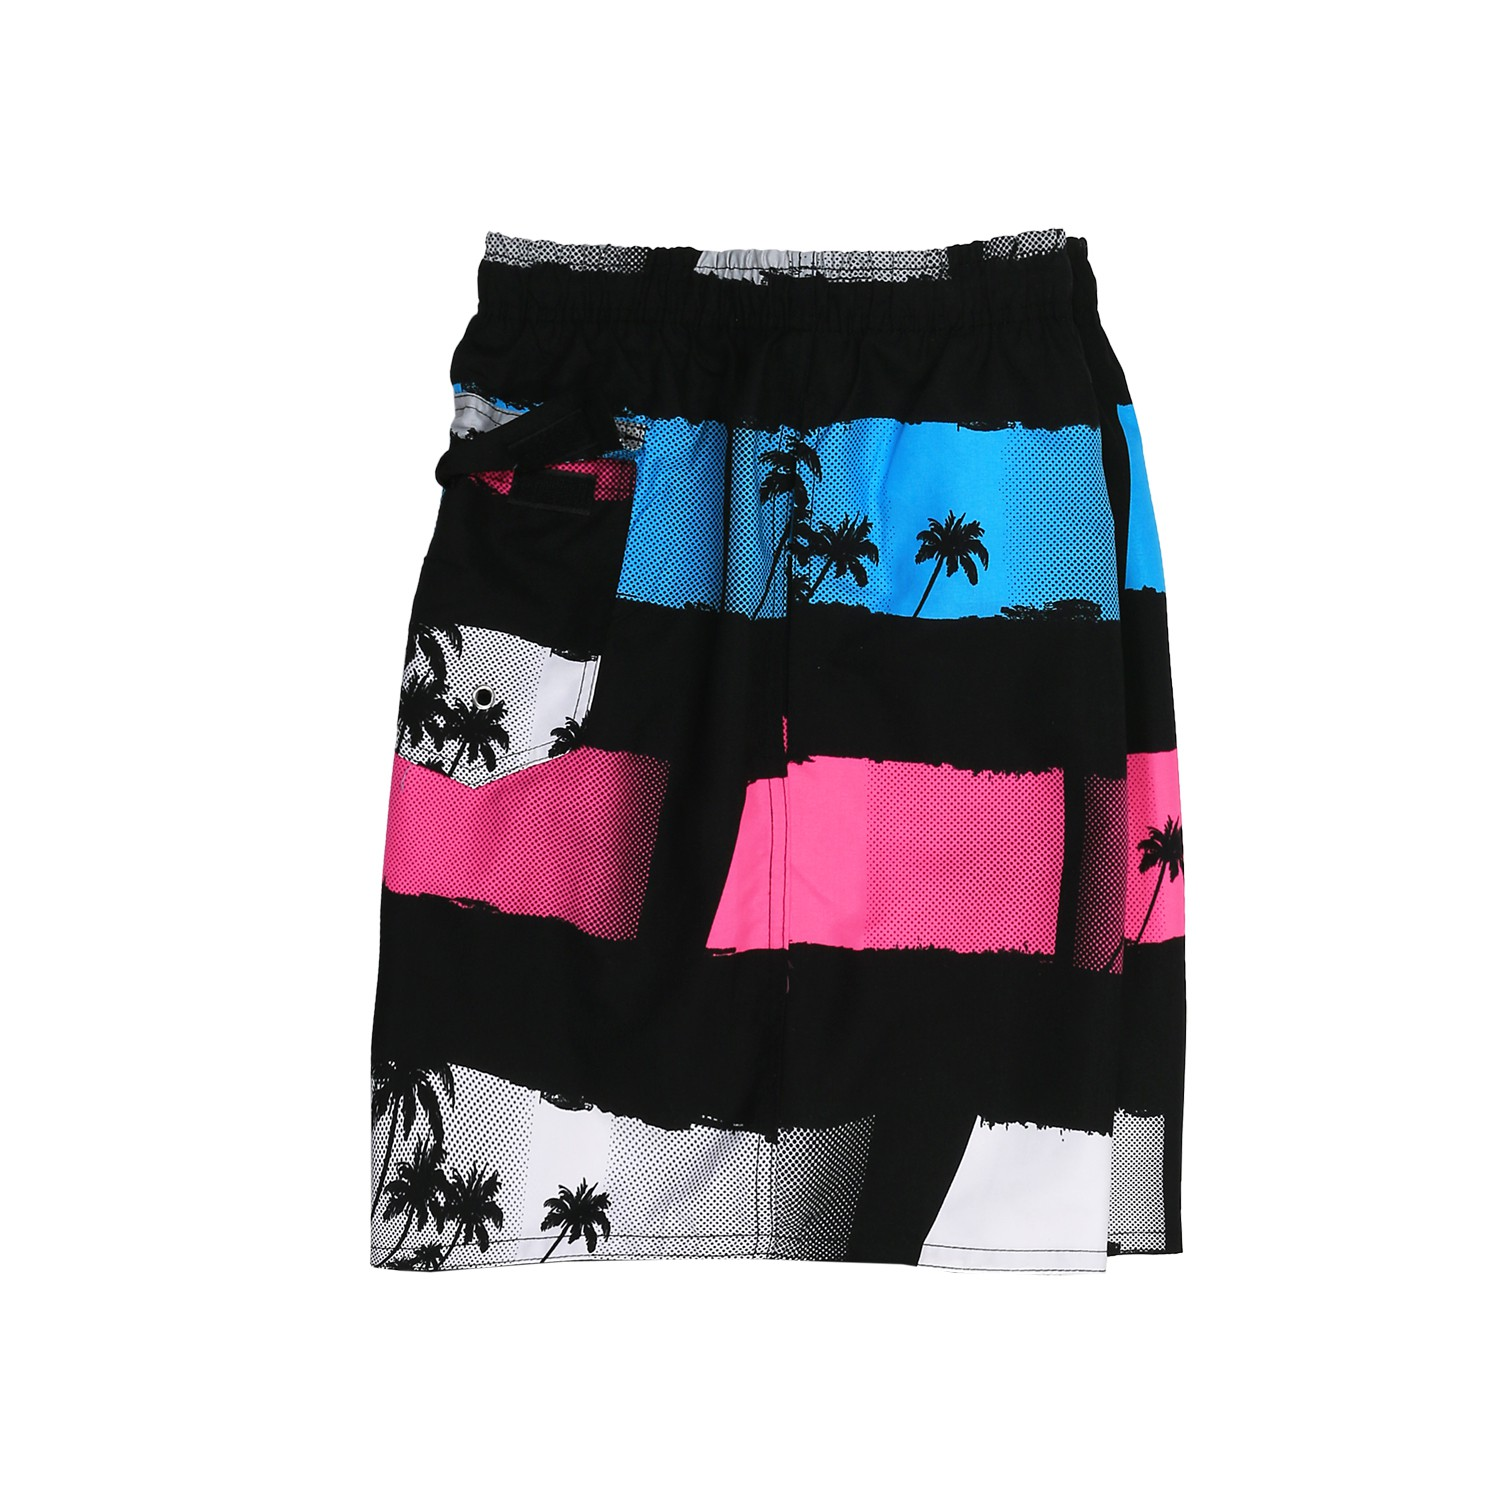 Detail Image to Swimming Trunks by Adamo, black/turquoise/pink in plus size up to 7XL